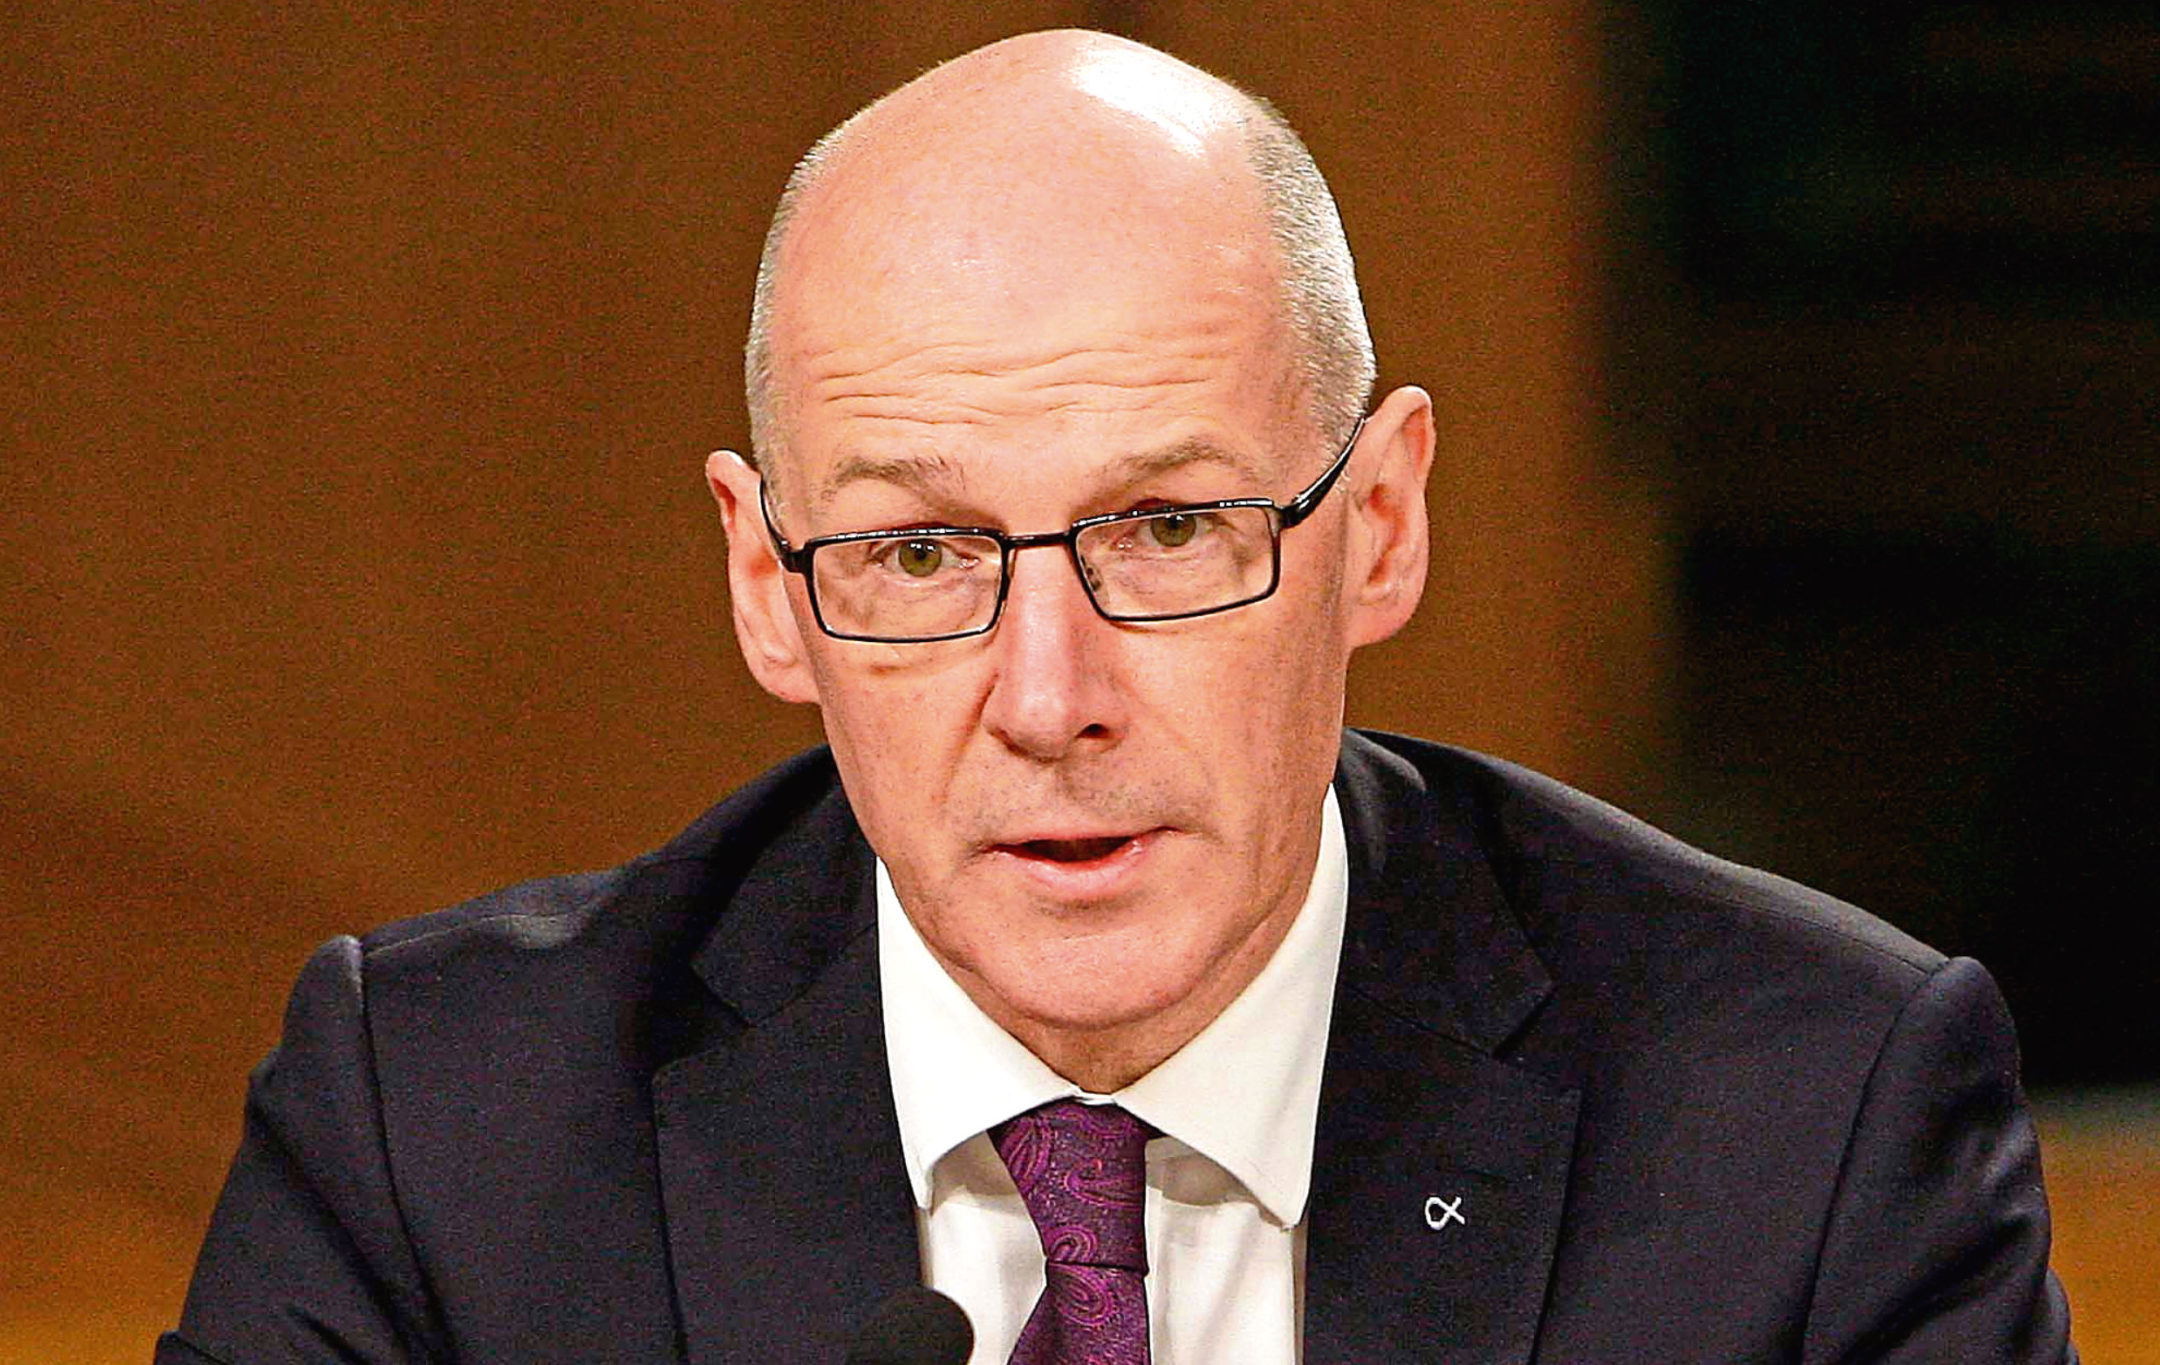 John Swinney, Cabinet Secretary for Education and Skills (Andrew Cowan/Scottish Parliament)